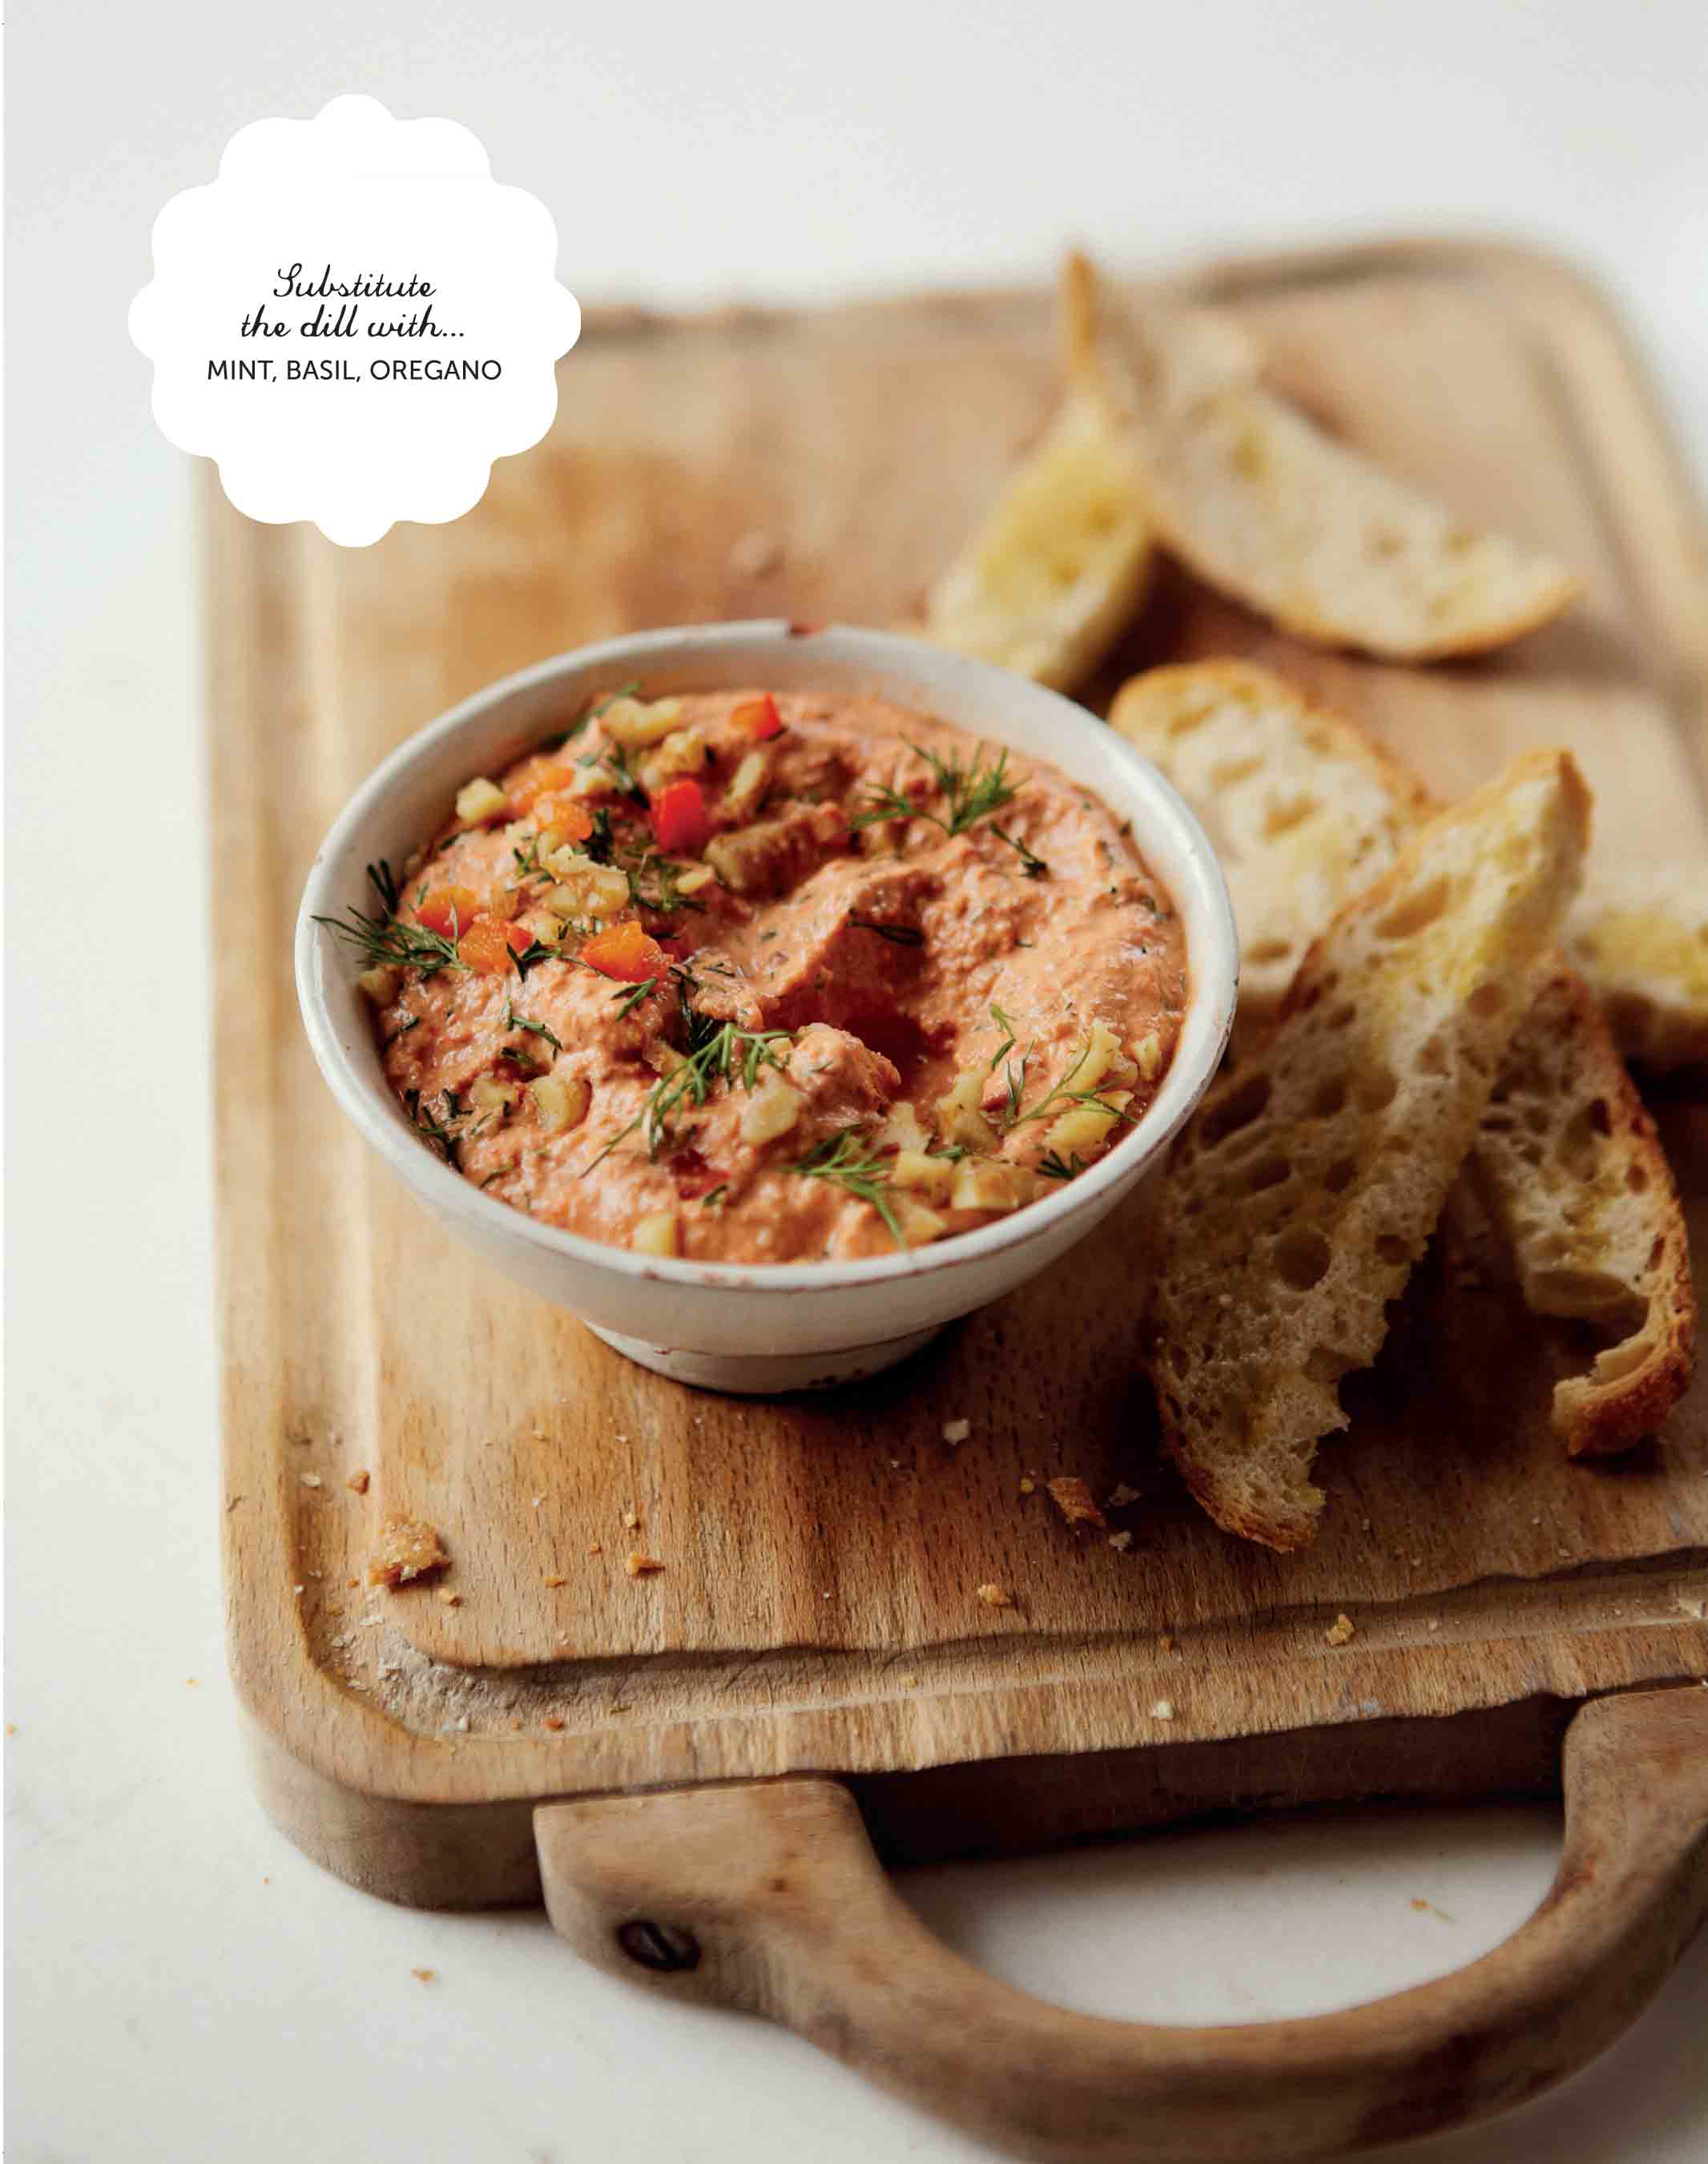 Dill and roasted red pepper dip